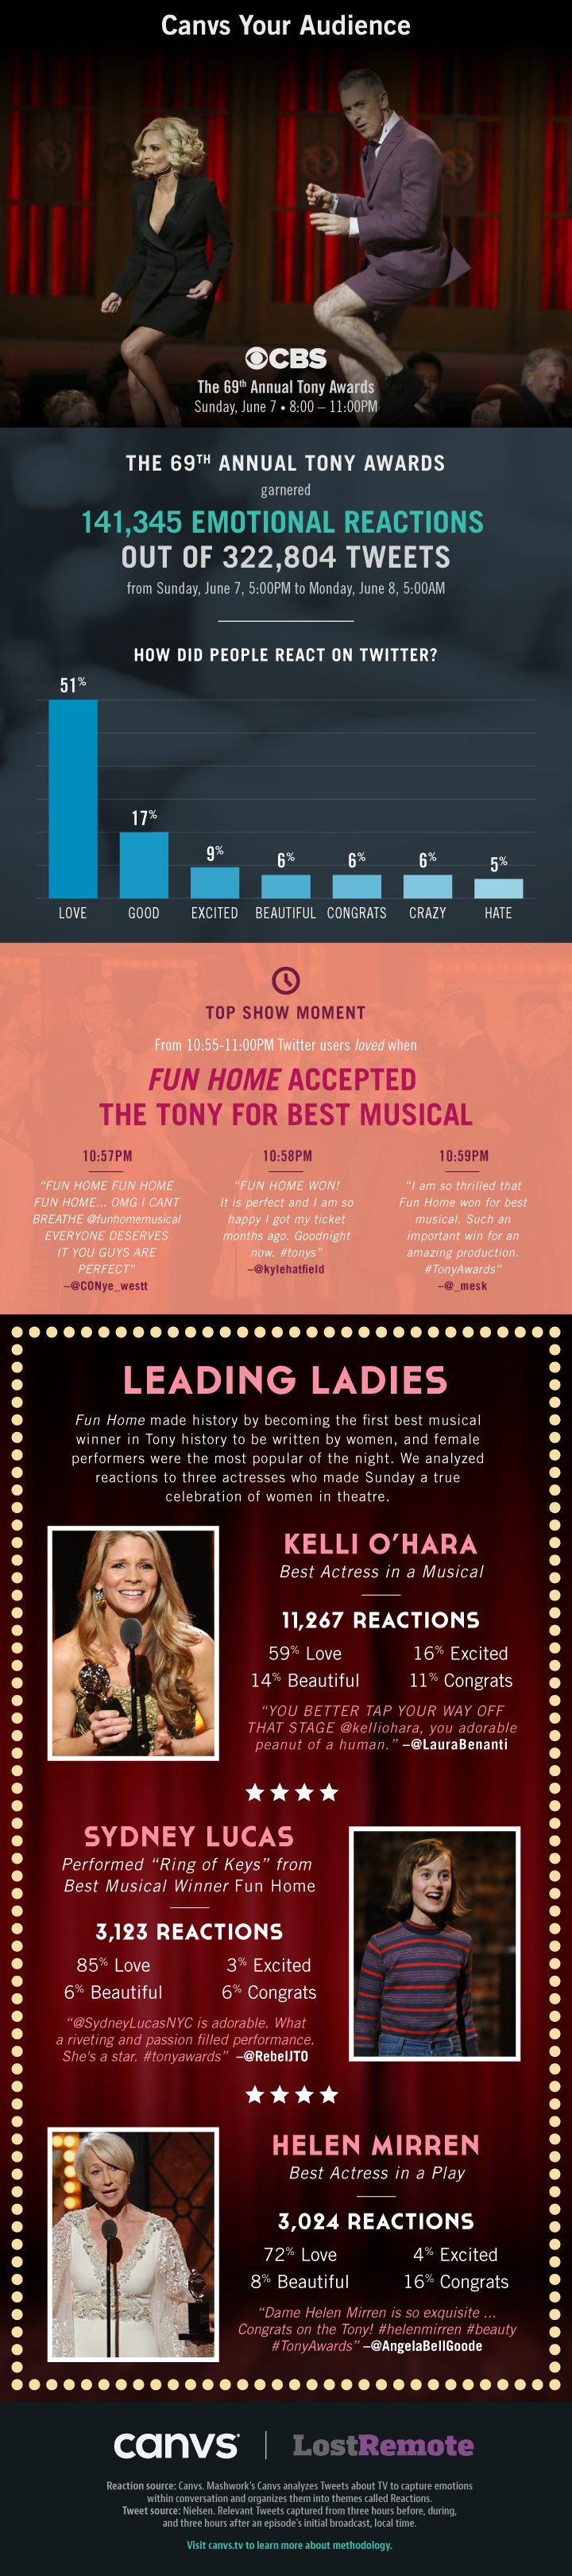 2015TonyAwards_Infographic